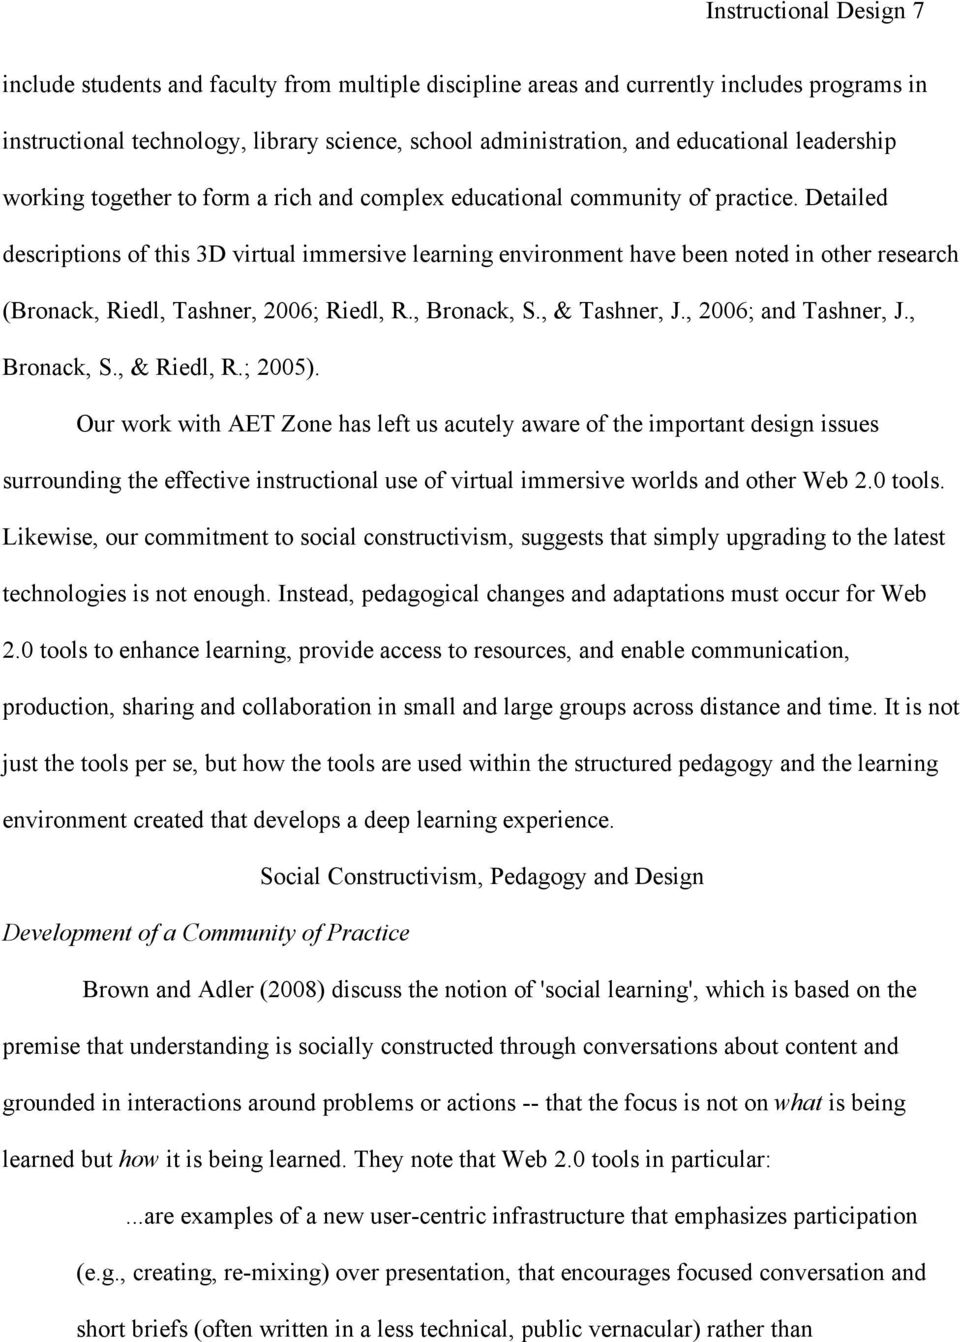 Detailed descriptions of this 3D virtual immersive learning environment have been noted in other research (Bronack, Riedl, Tashner, 2006; Riedl, R., Bronack, S., & Tashner, J., 2006; and Tashner, J.